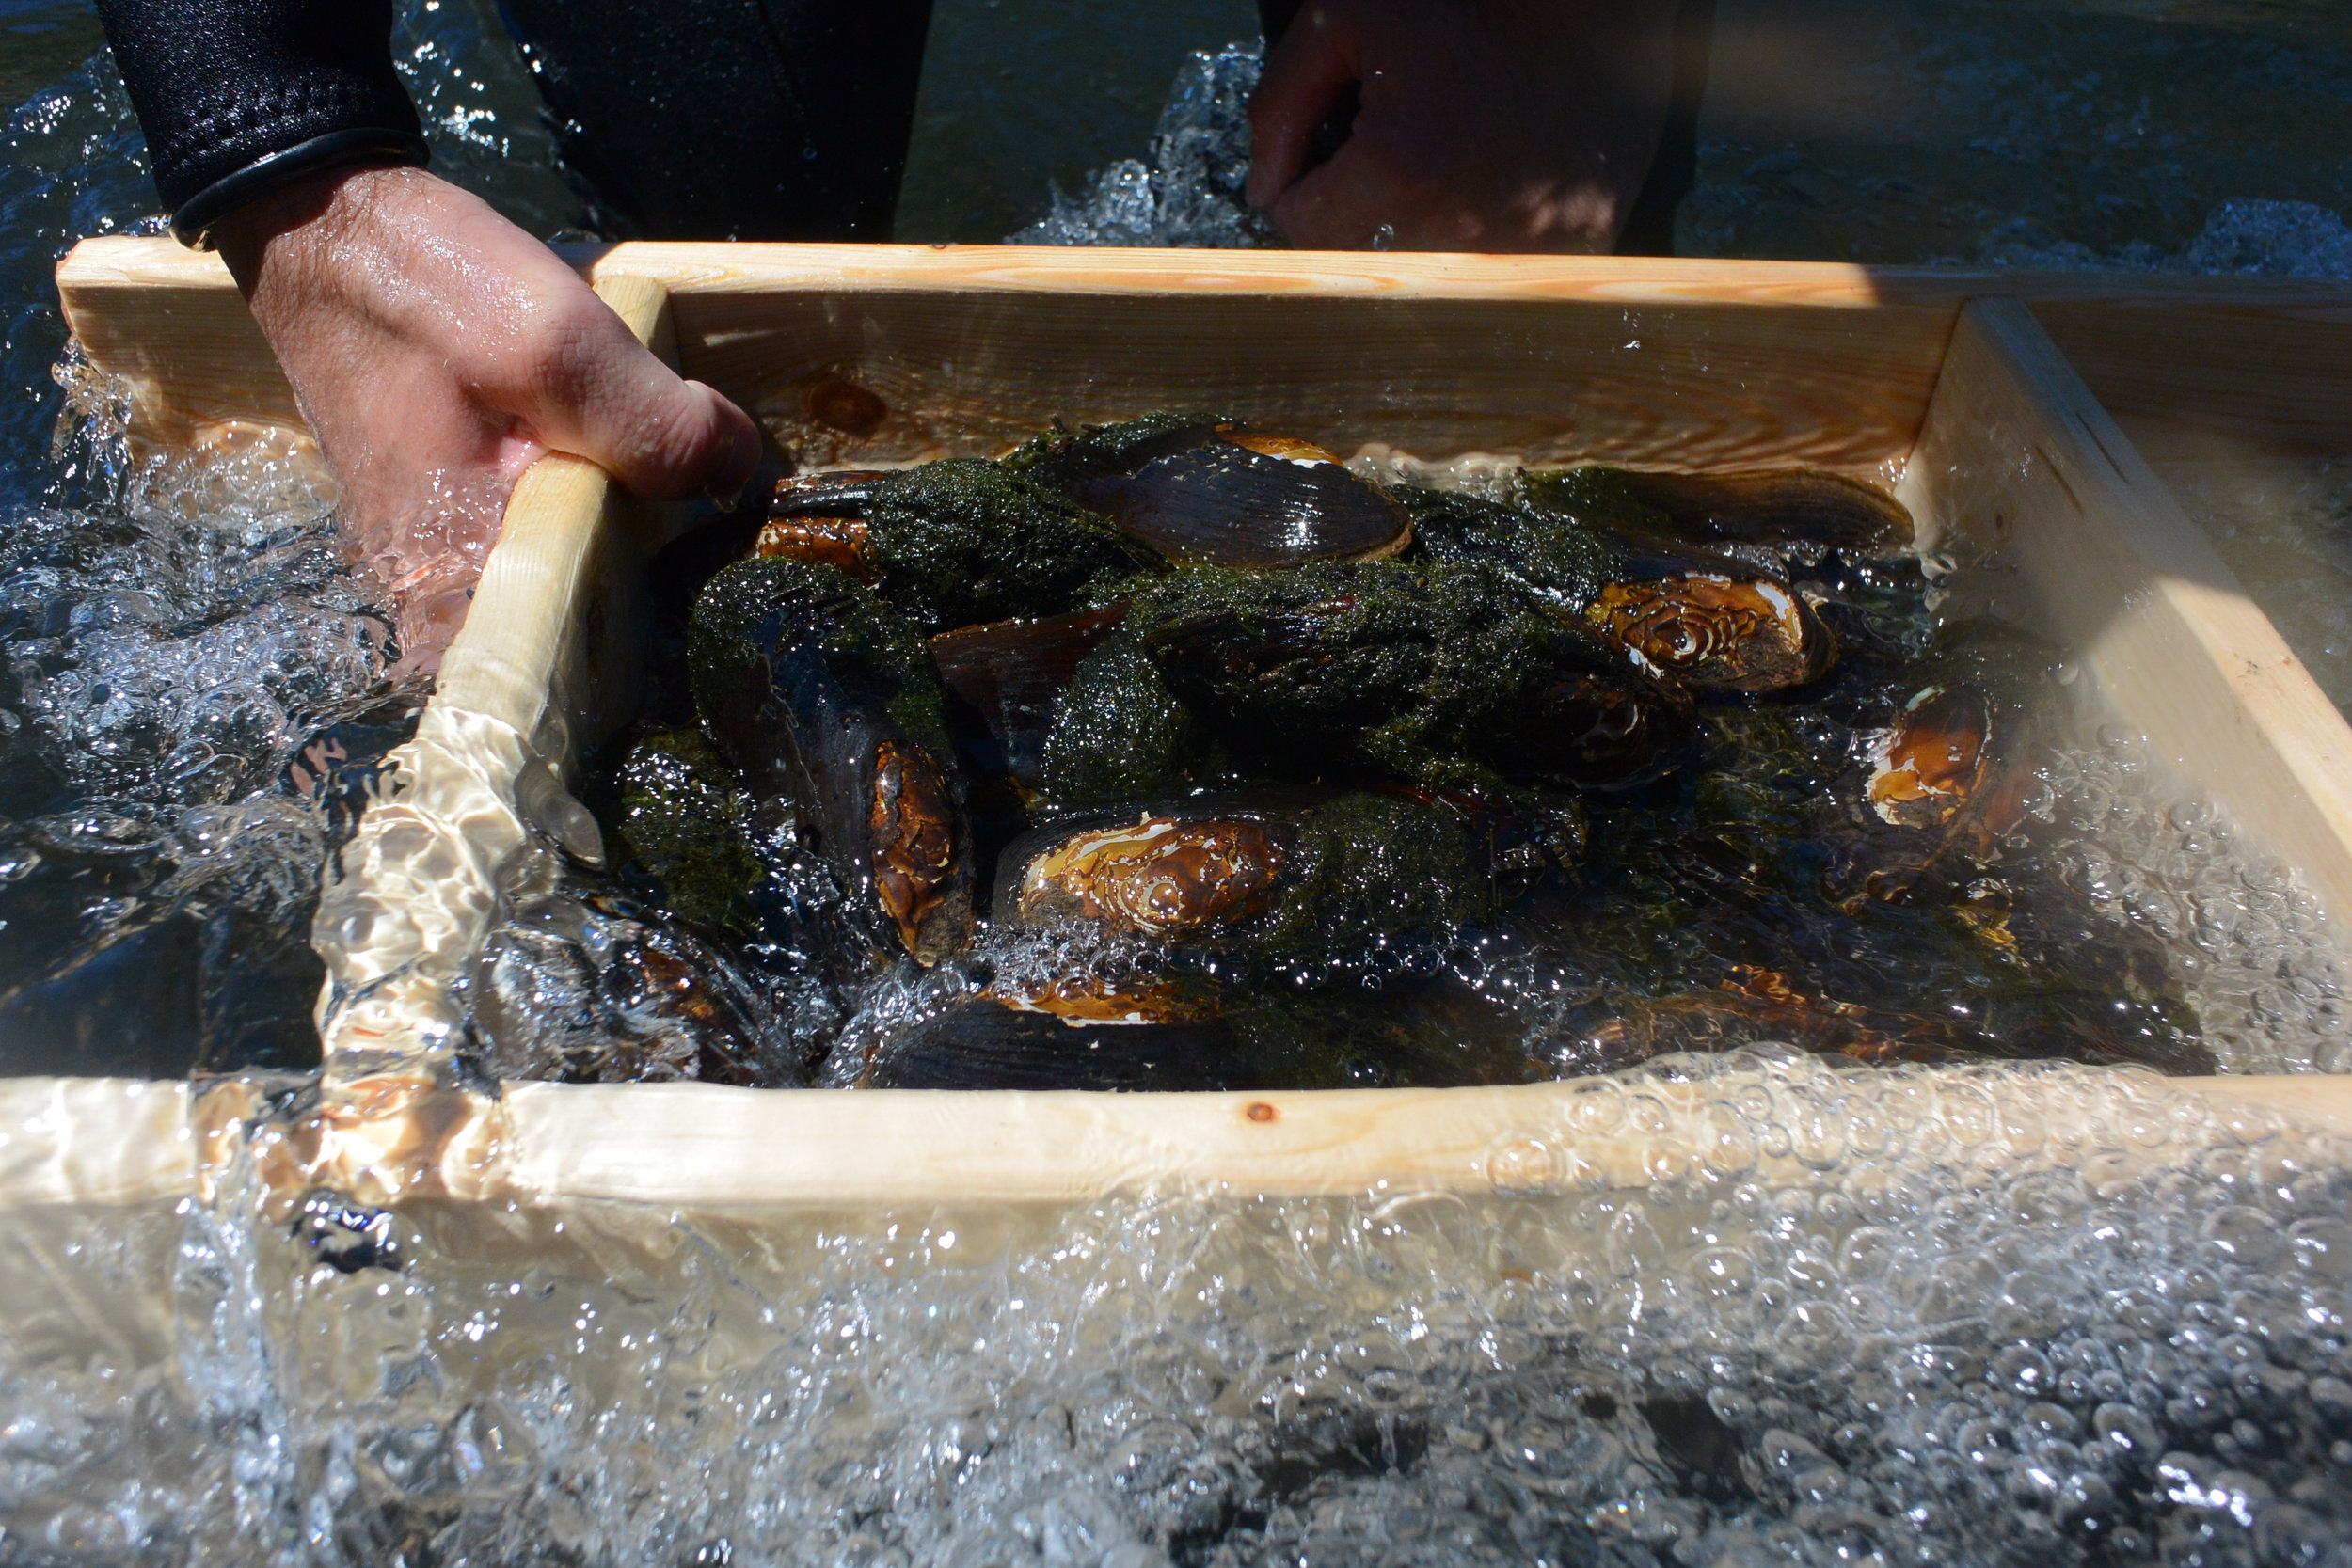 Mussels temporarily removed from river bed to measure during survey.